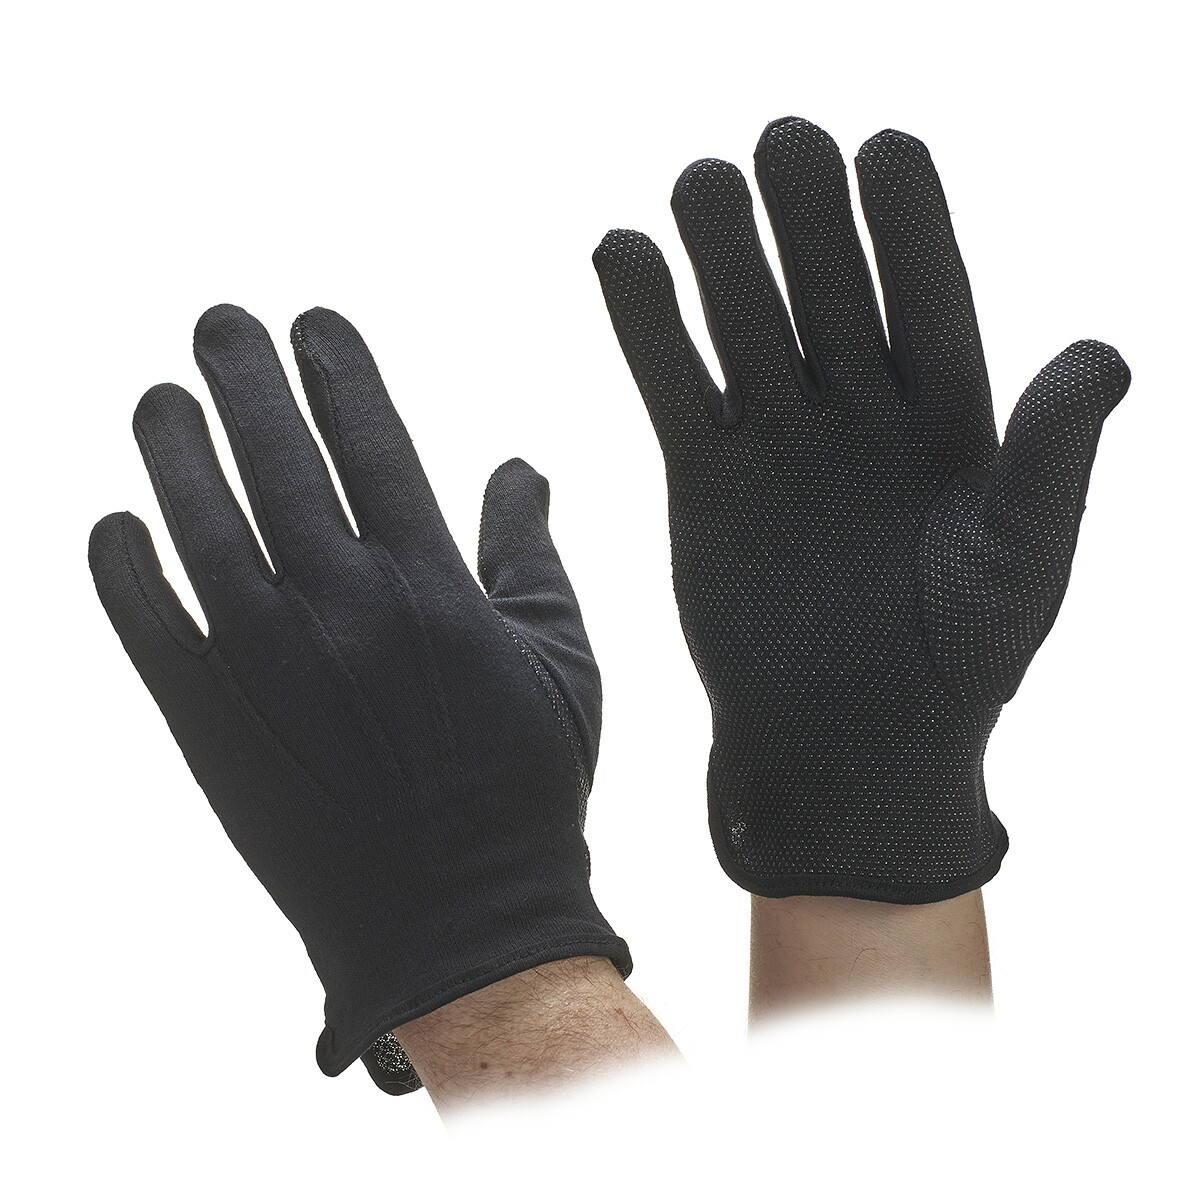 White Cotton Gloves For Food Service